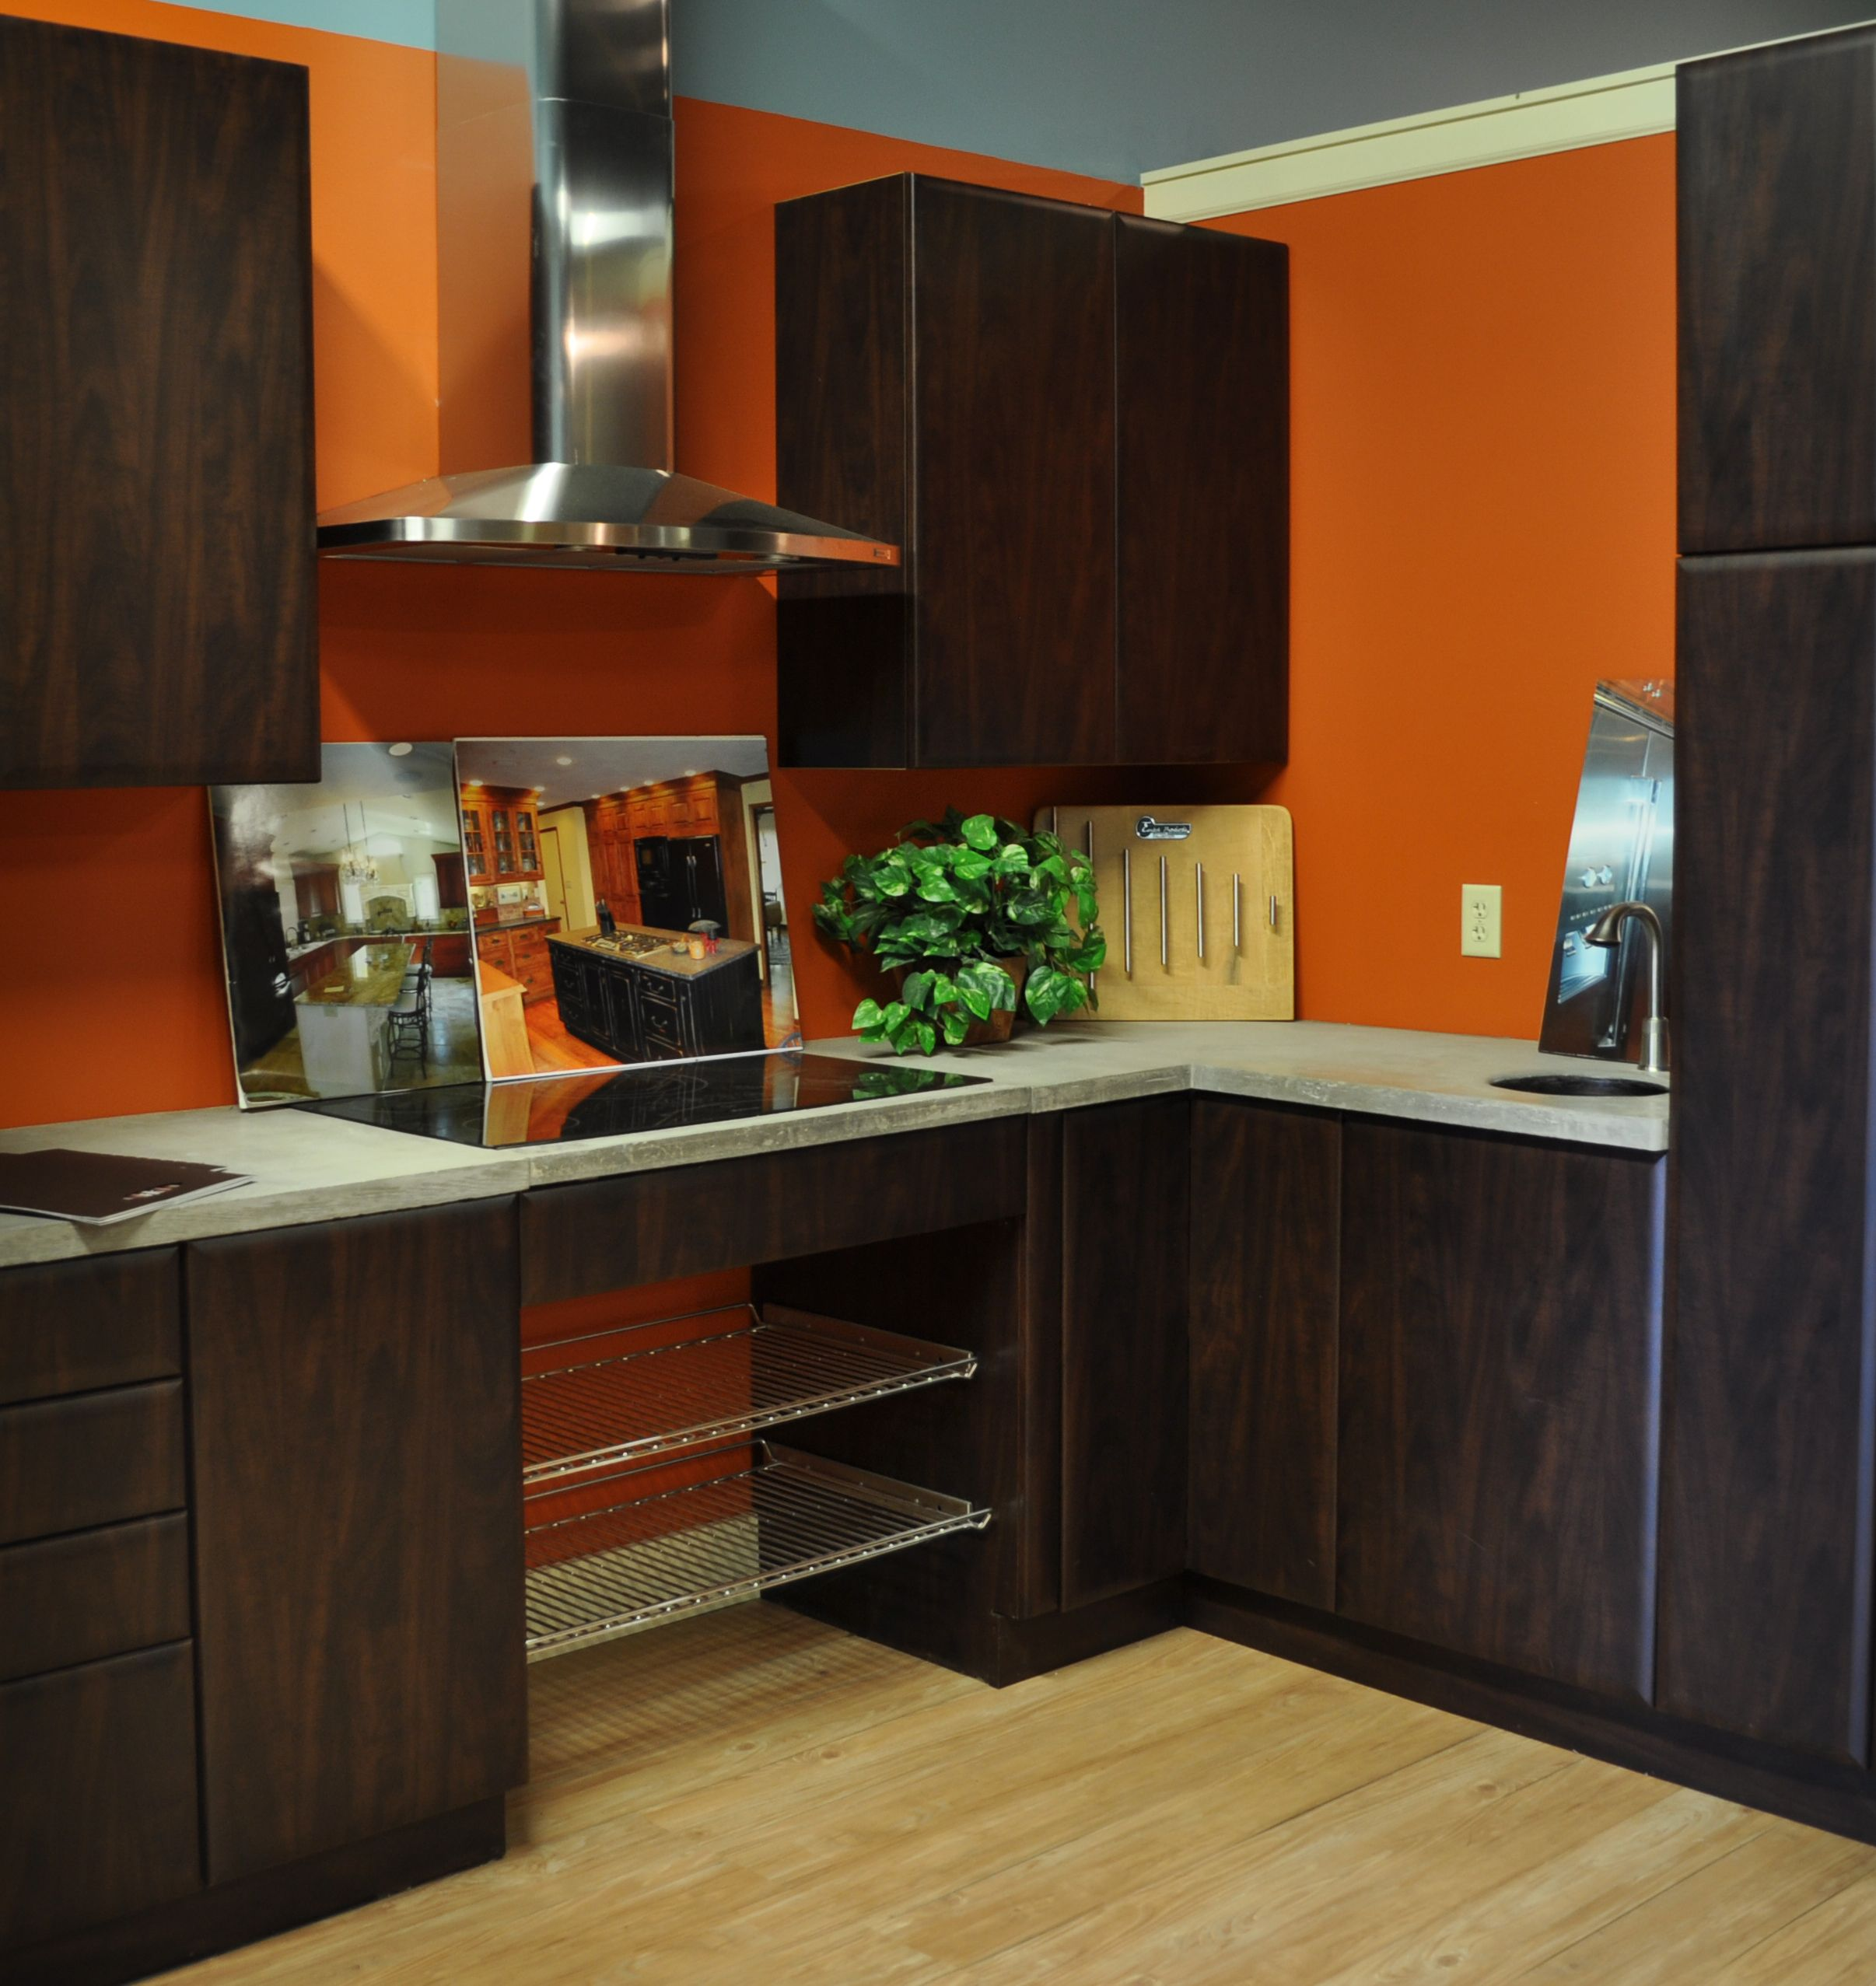 This kitchen display can be found in our syracuse ny showroom